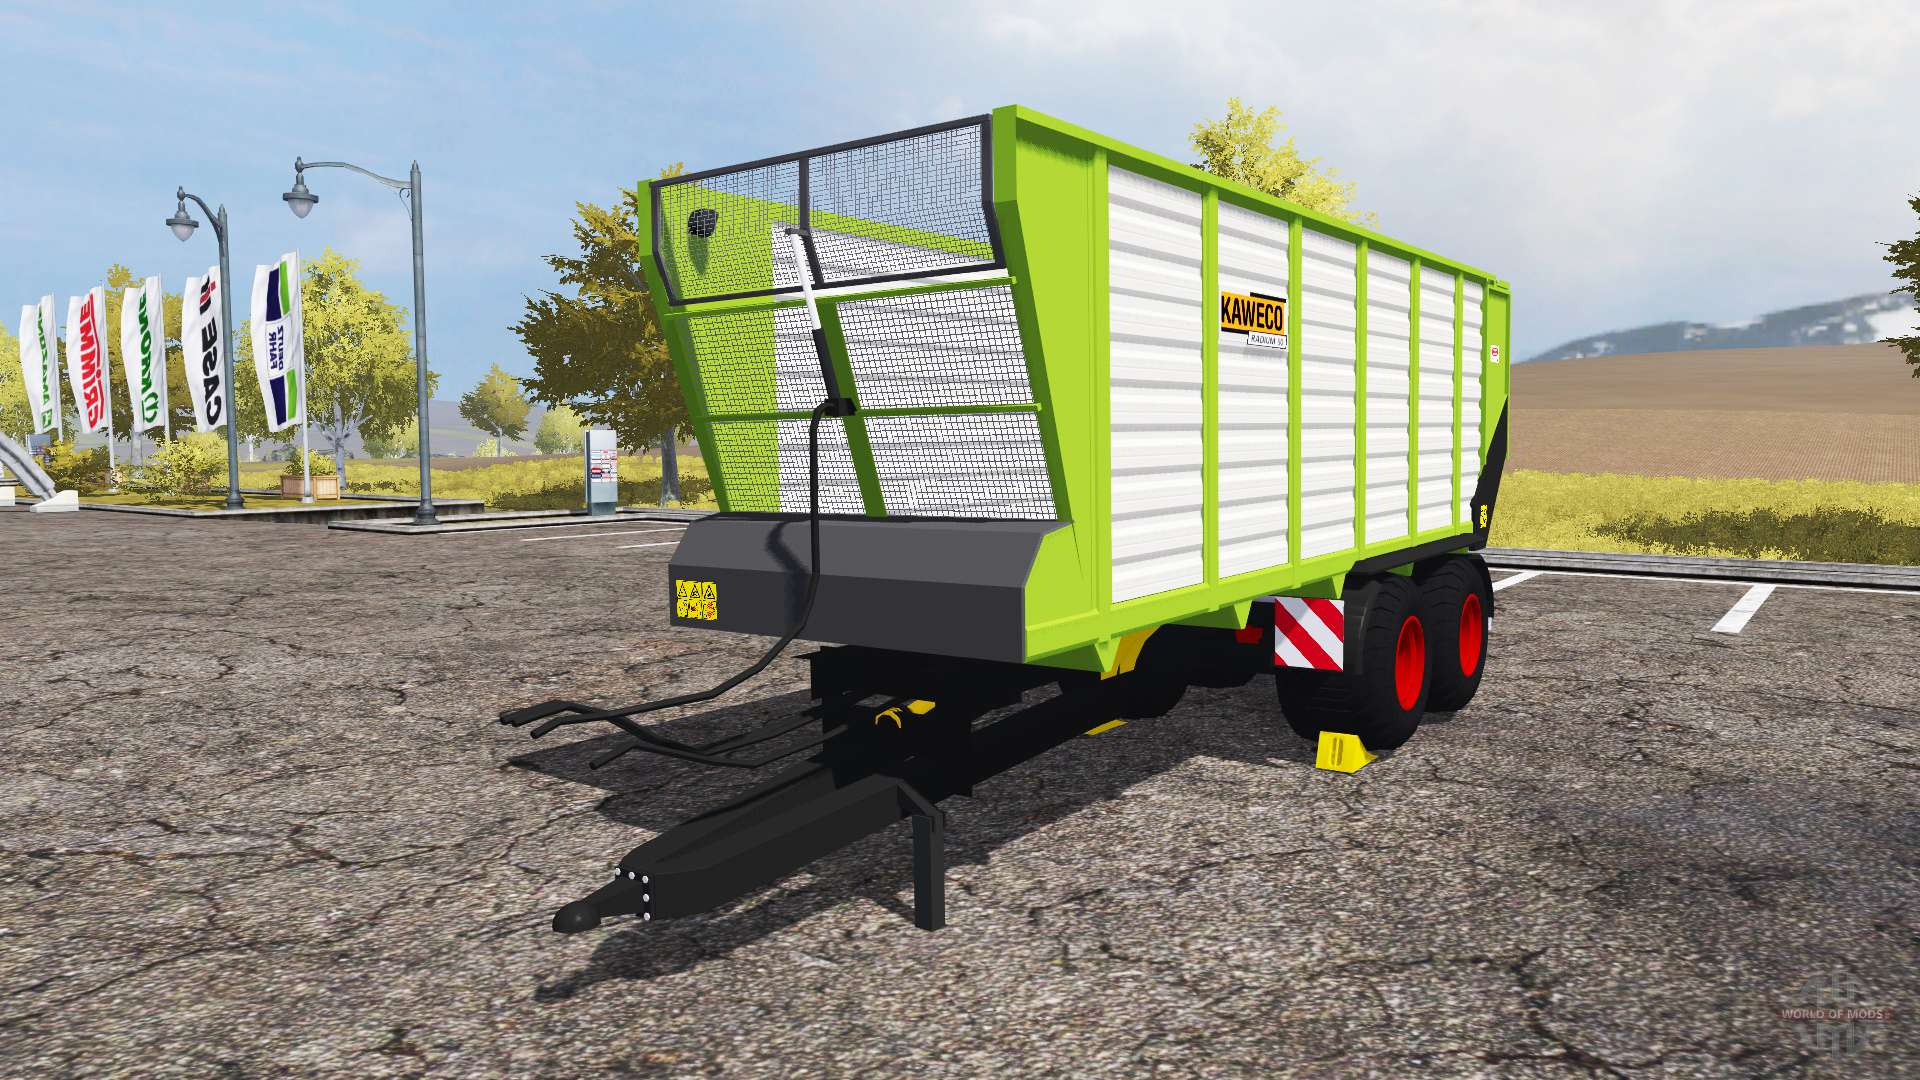 kaweco radium 50 farming simulator 2013. Black Bedroom Furniture Sets. Home Design Ideas